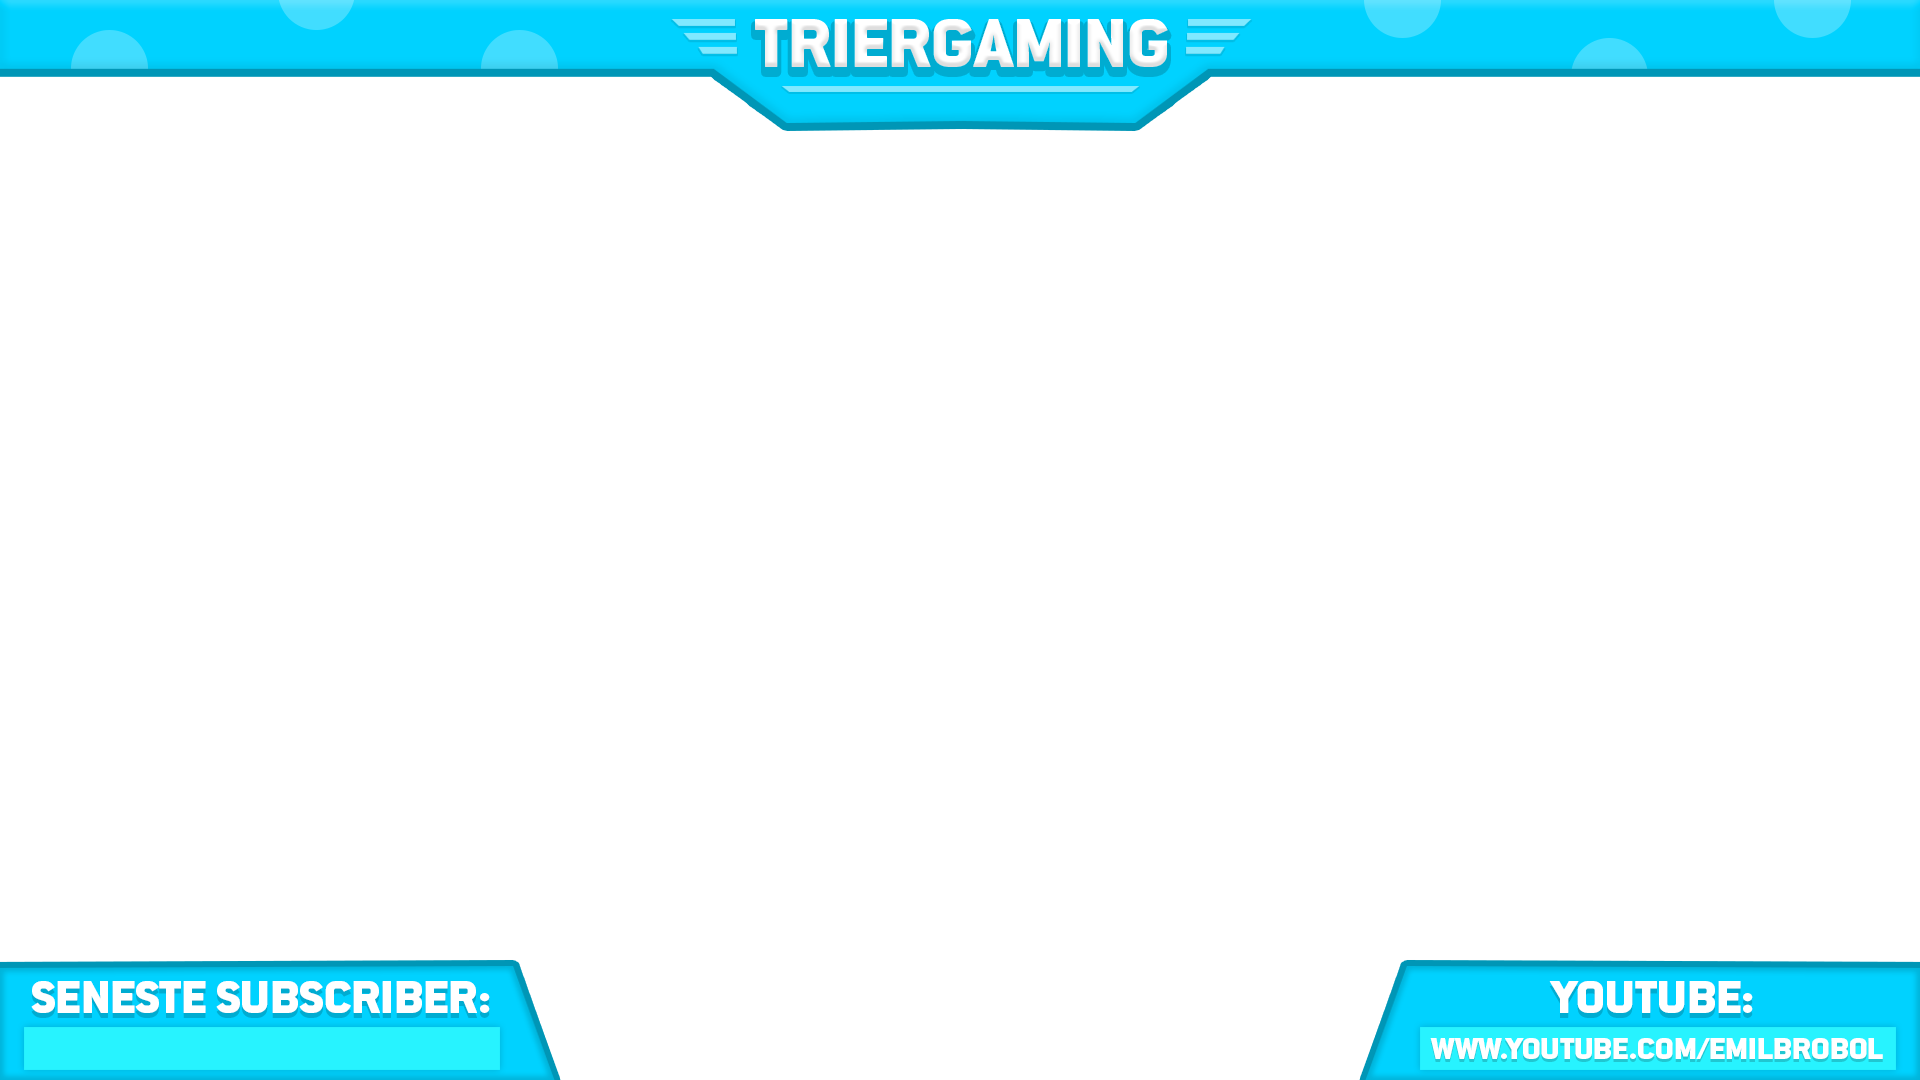 Youtube overlay png. Scene swaggy graphics triergaming